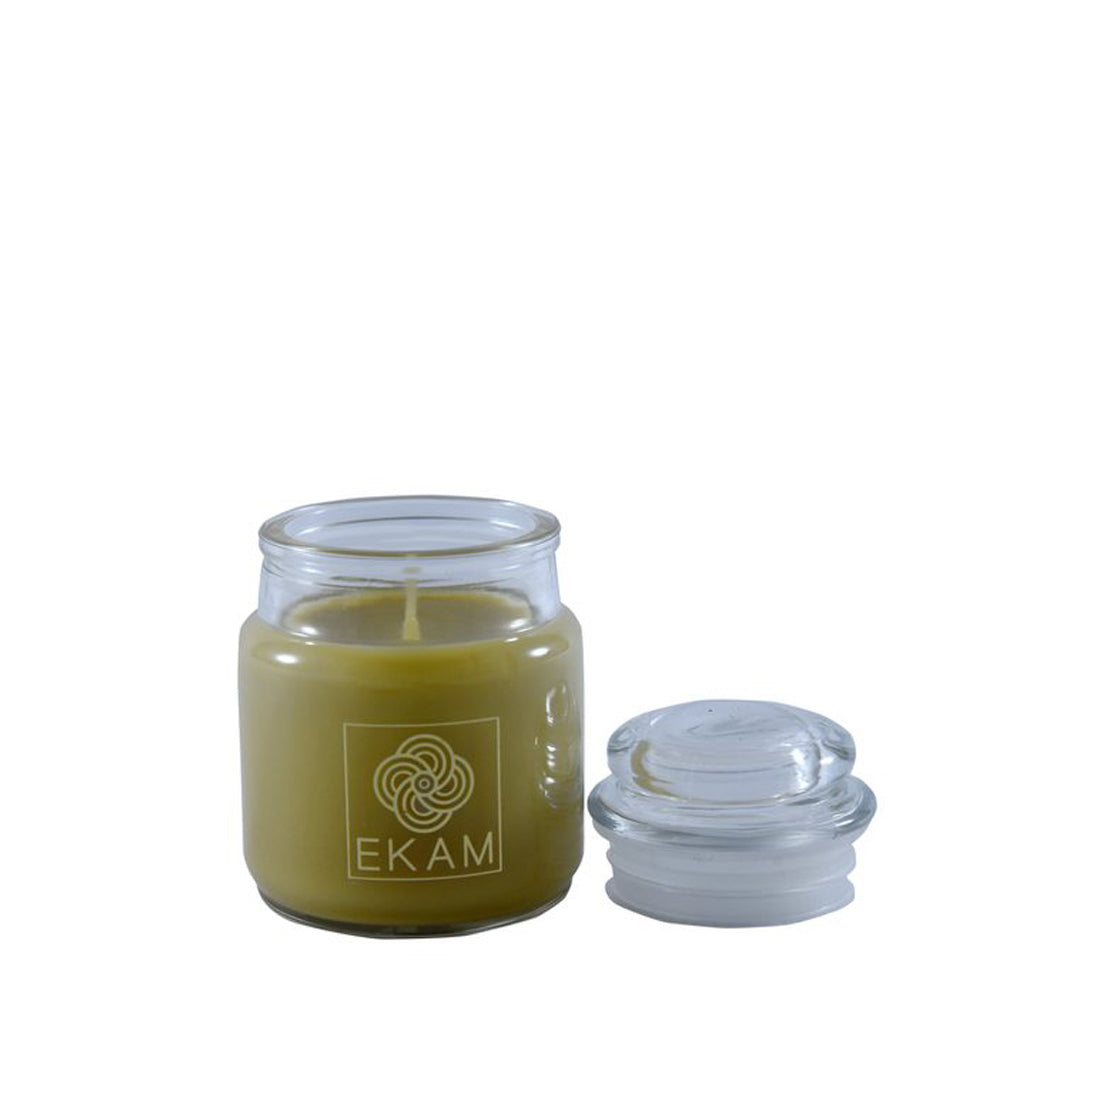 Sandalwood Ekam Jar Candles